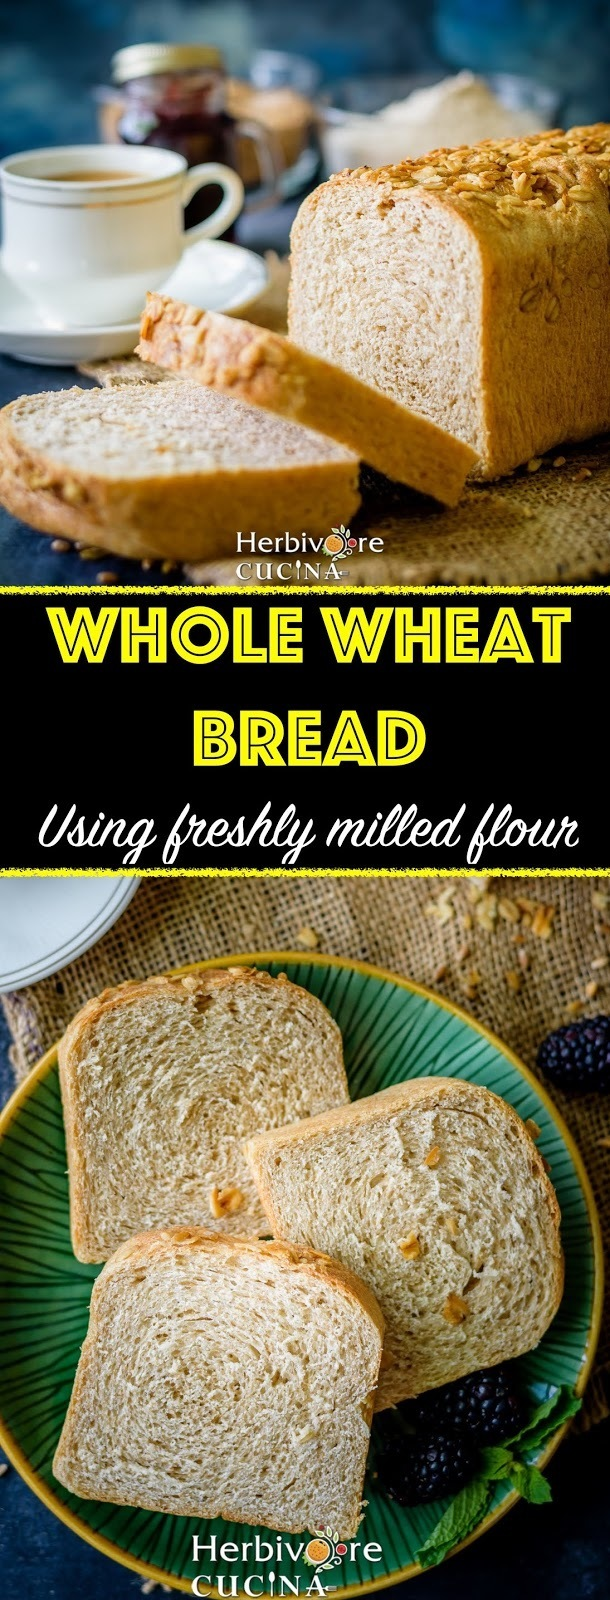 Whole Wheat Bread Loaf using freshly milled Flour